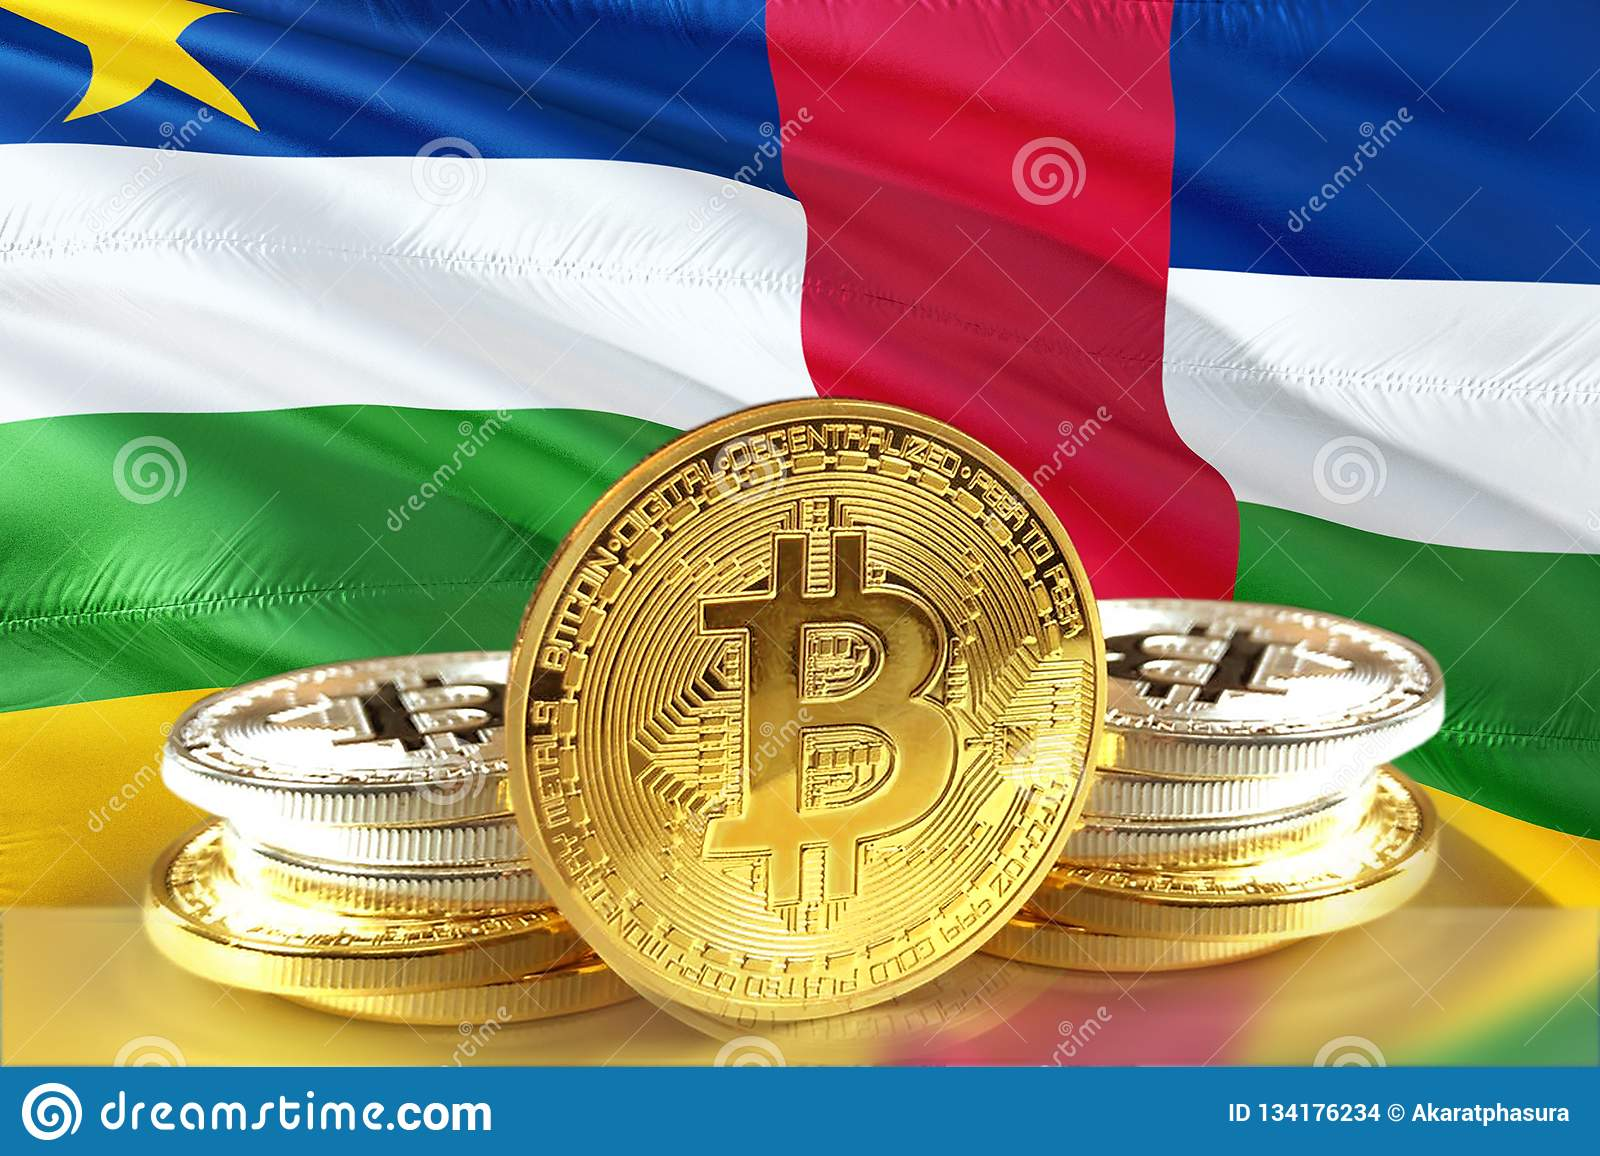 Bitcoin coins on Central African Republic Flag, Cryptocurrency, Digital money concept